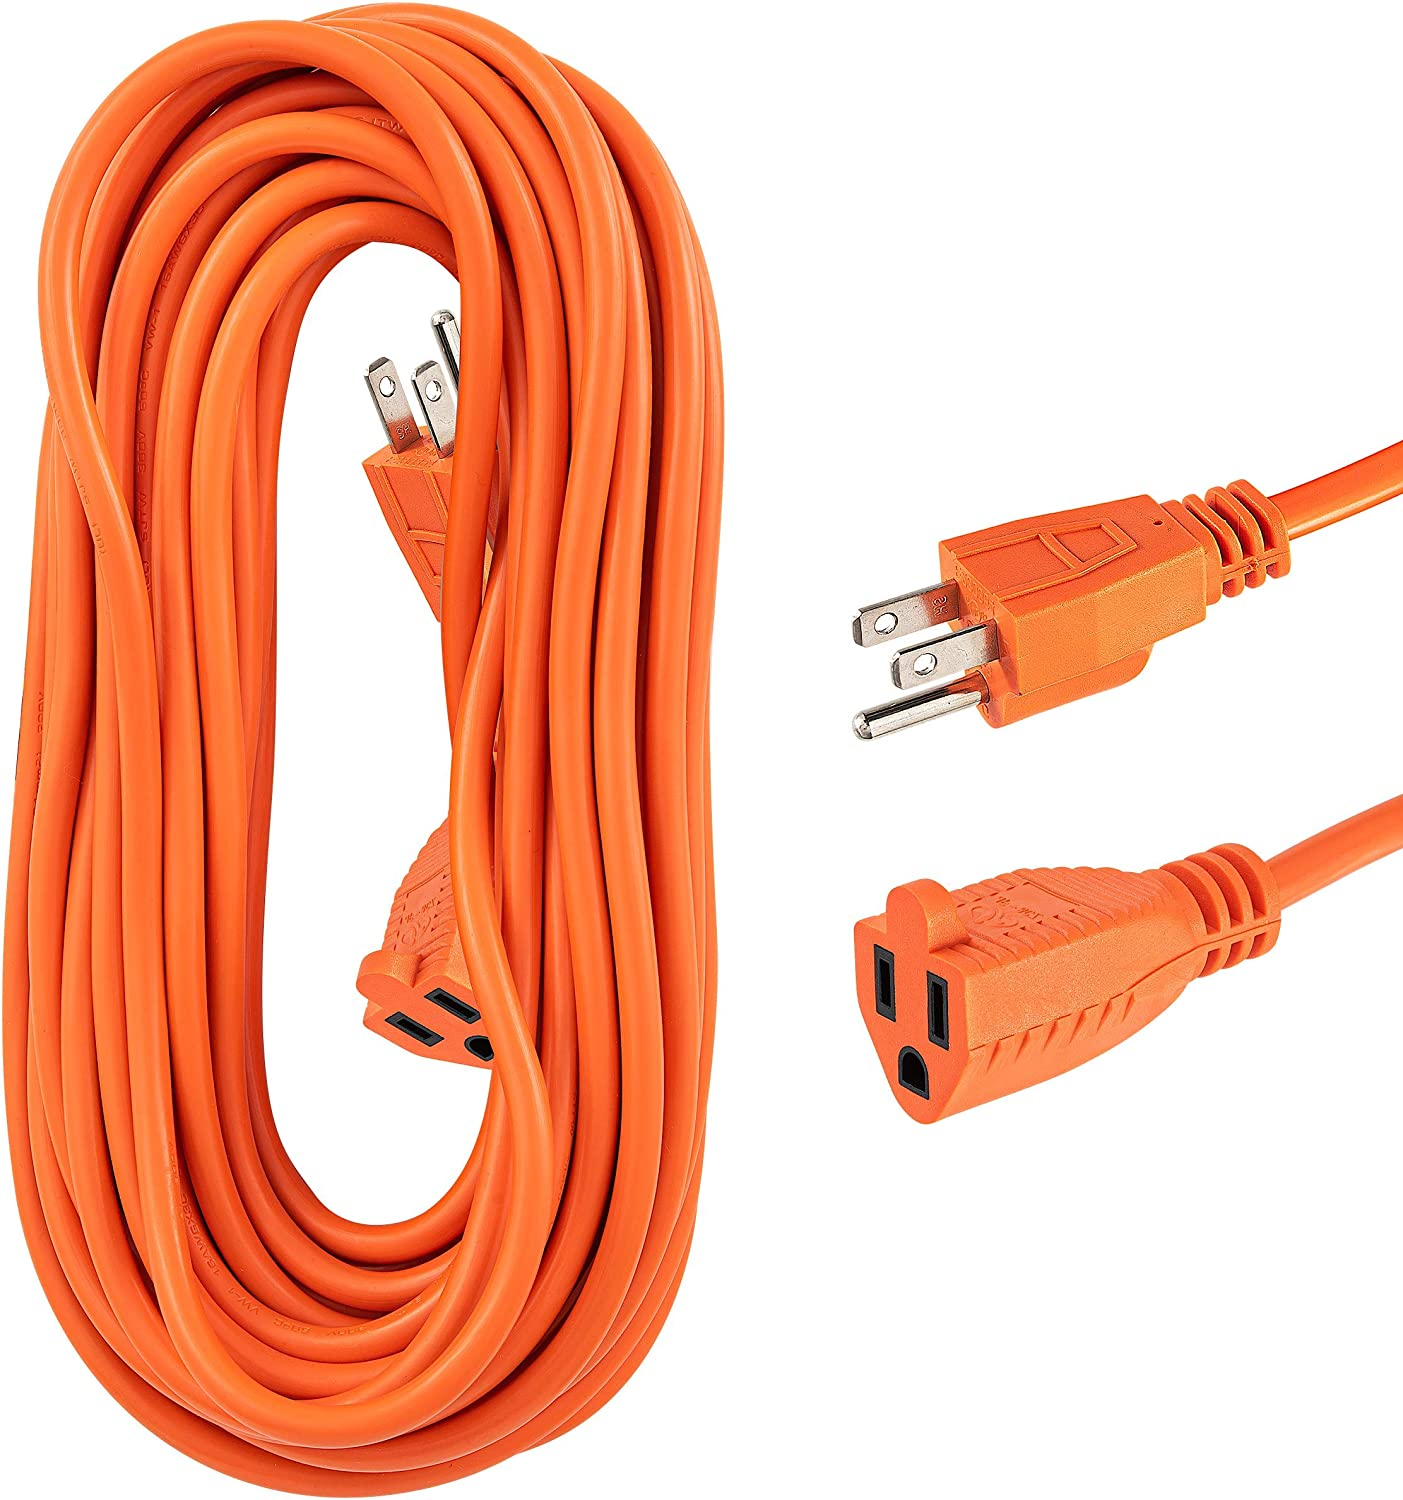 Ranking TOP15 Indoor Outdoor Extension Cord 50 Feet 40% OFF Cheap Sale 3 Outlet 1 Prong Orange